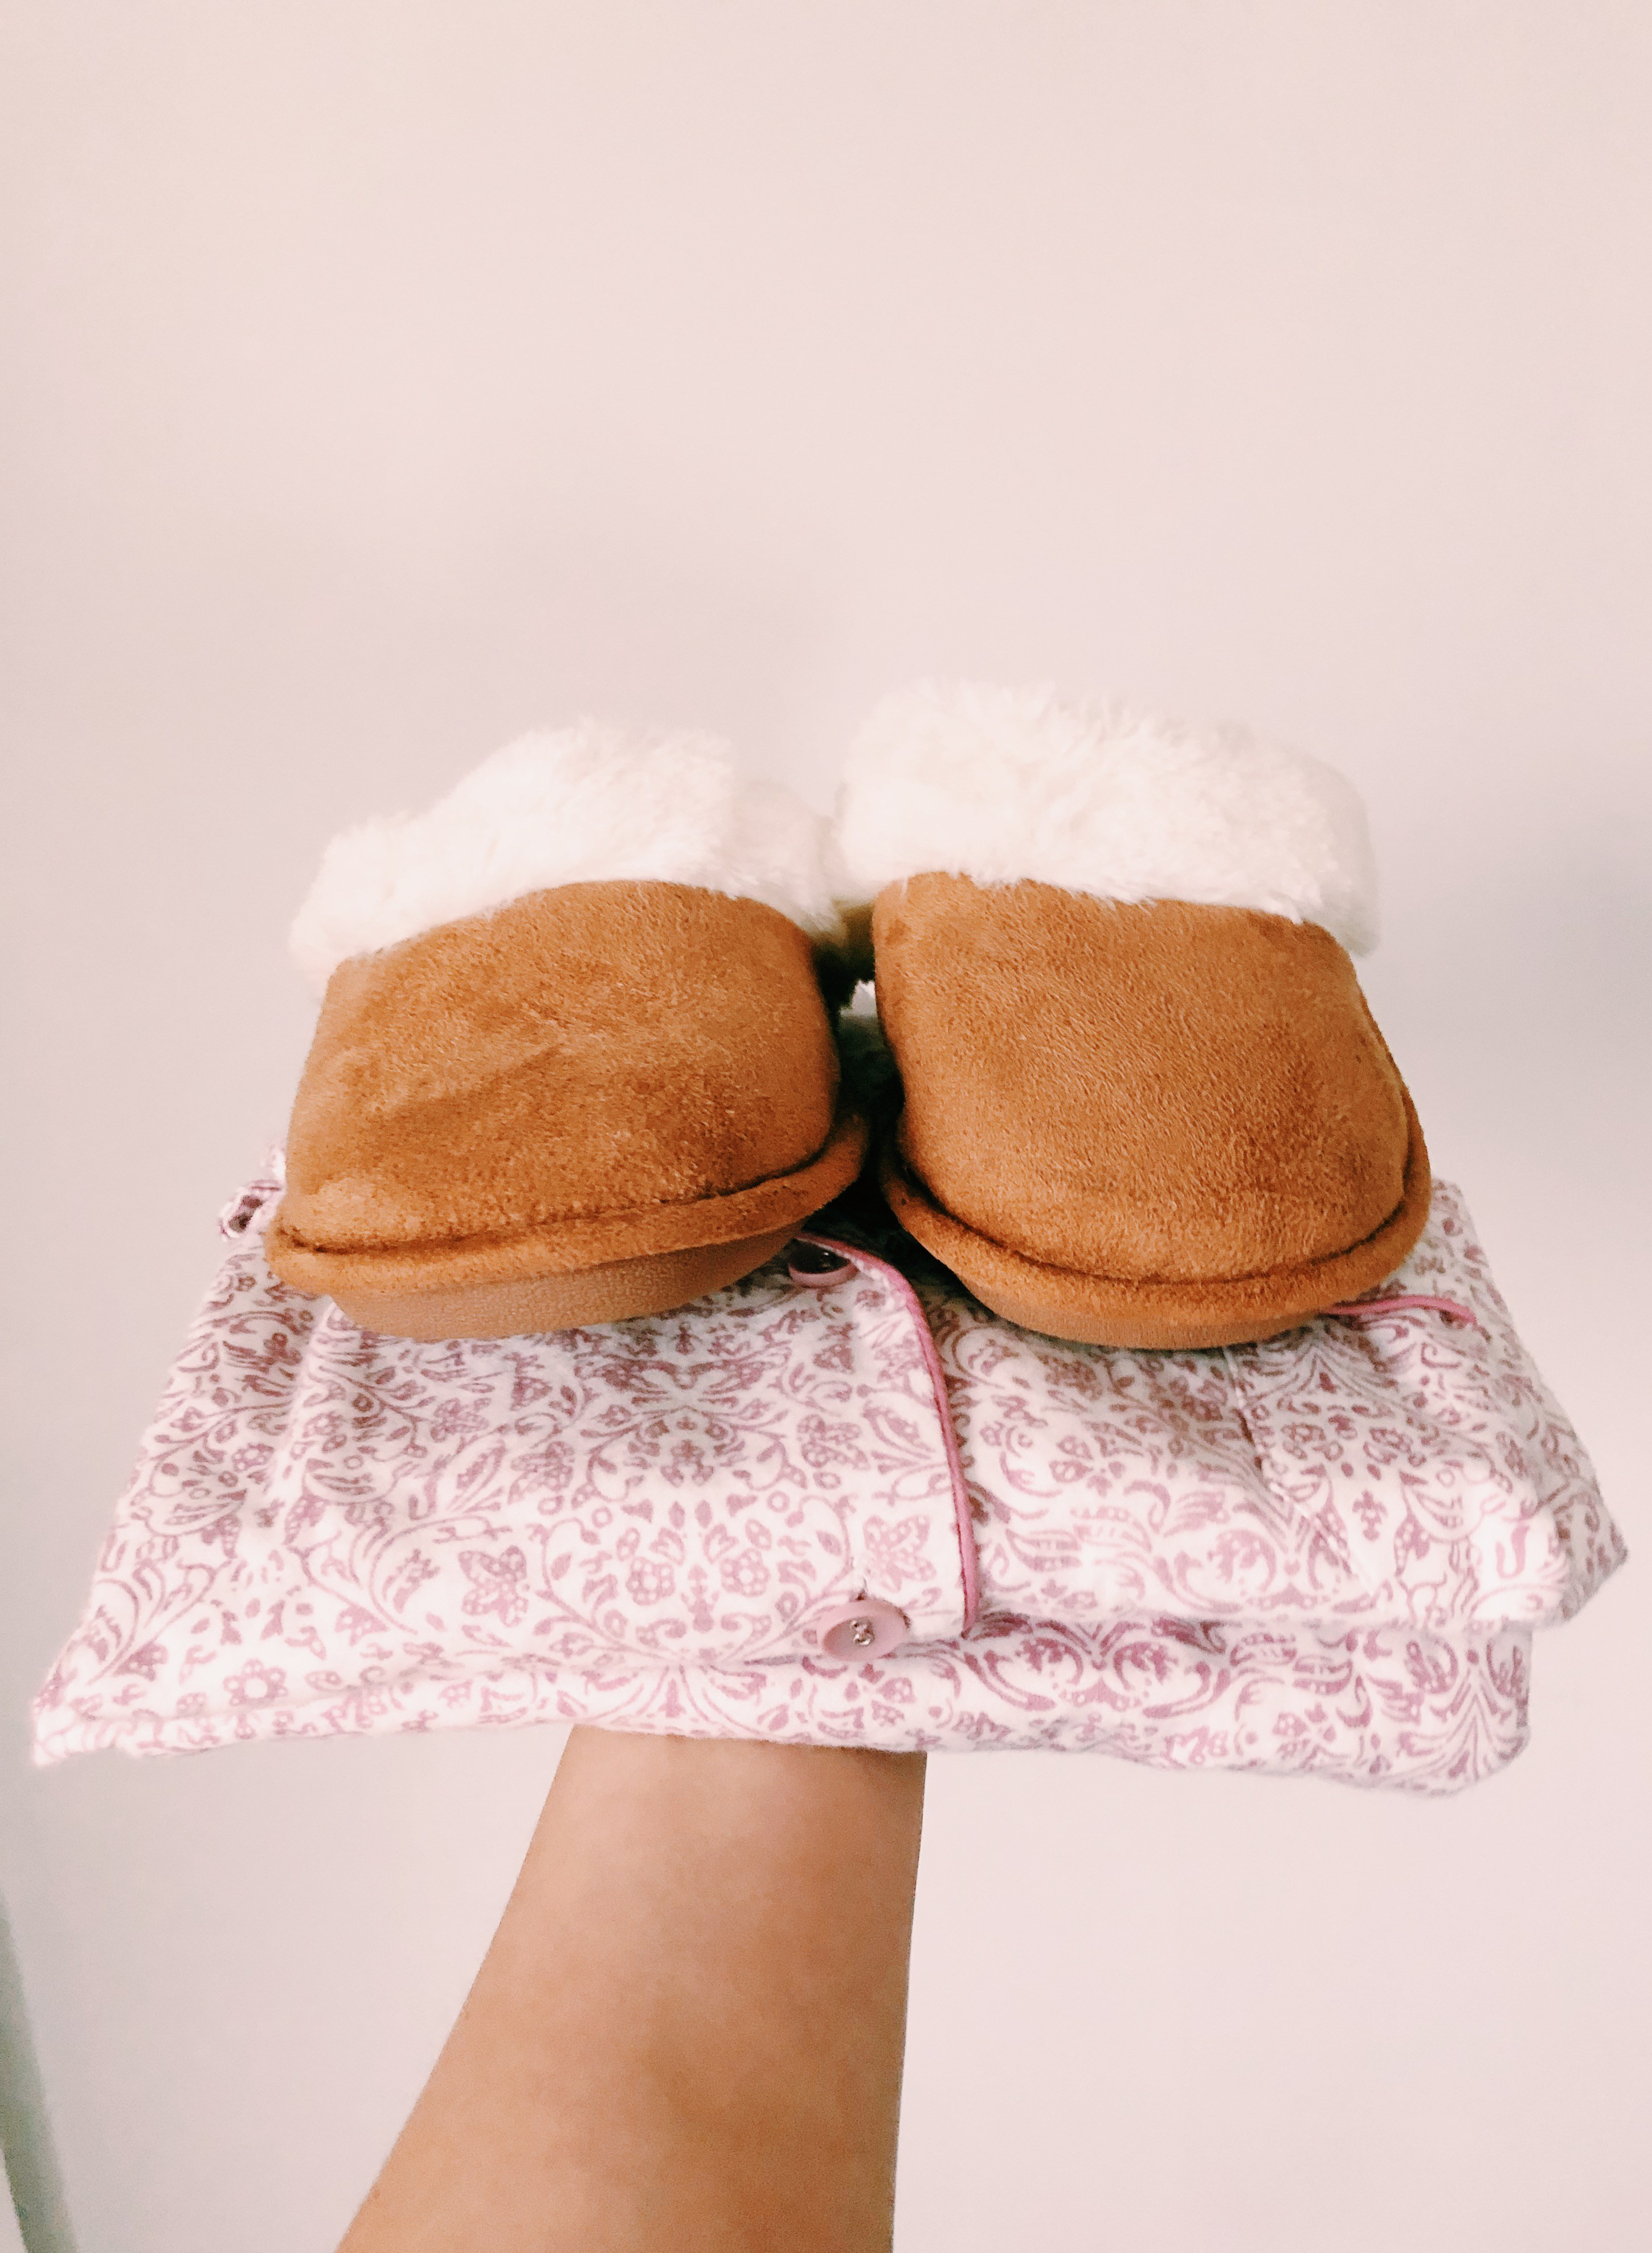 Cosy pyjamas with fluffy slippers